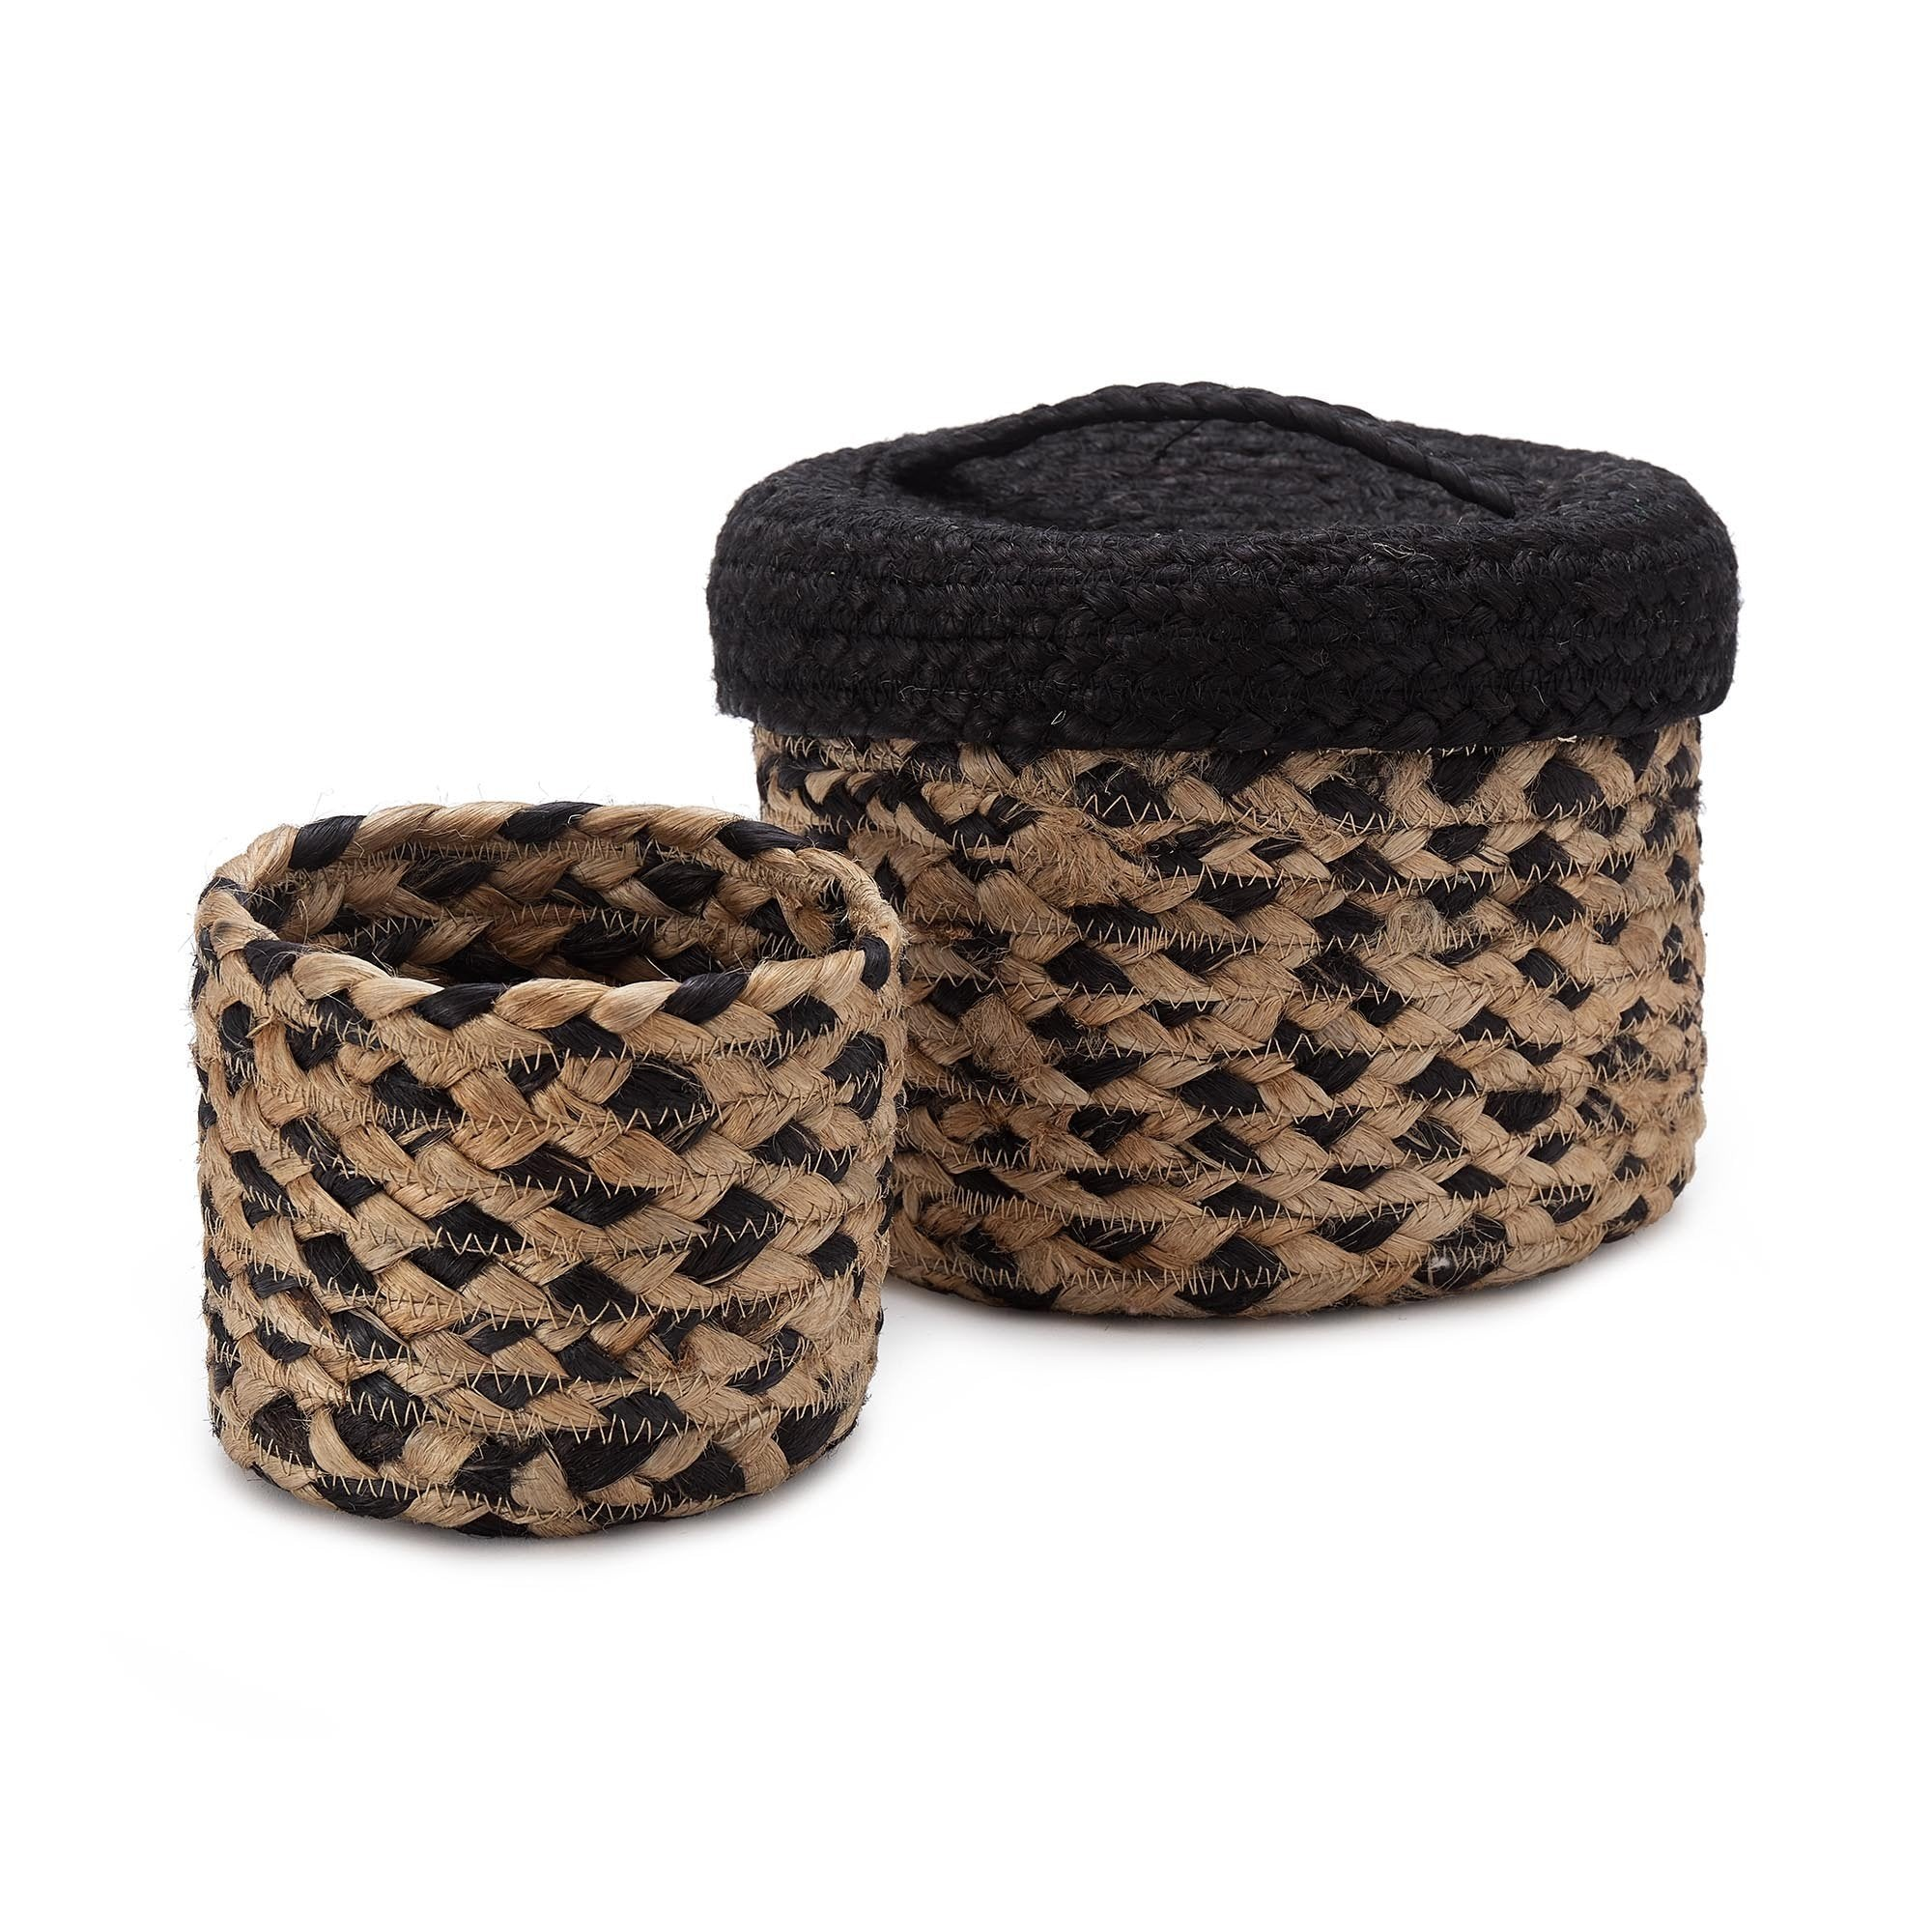 Dunagiri storage, natural & black, 100% jute